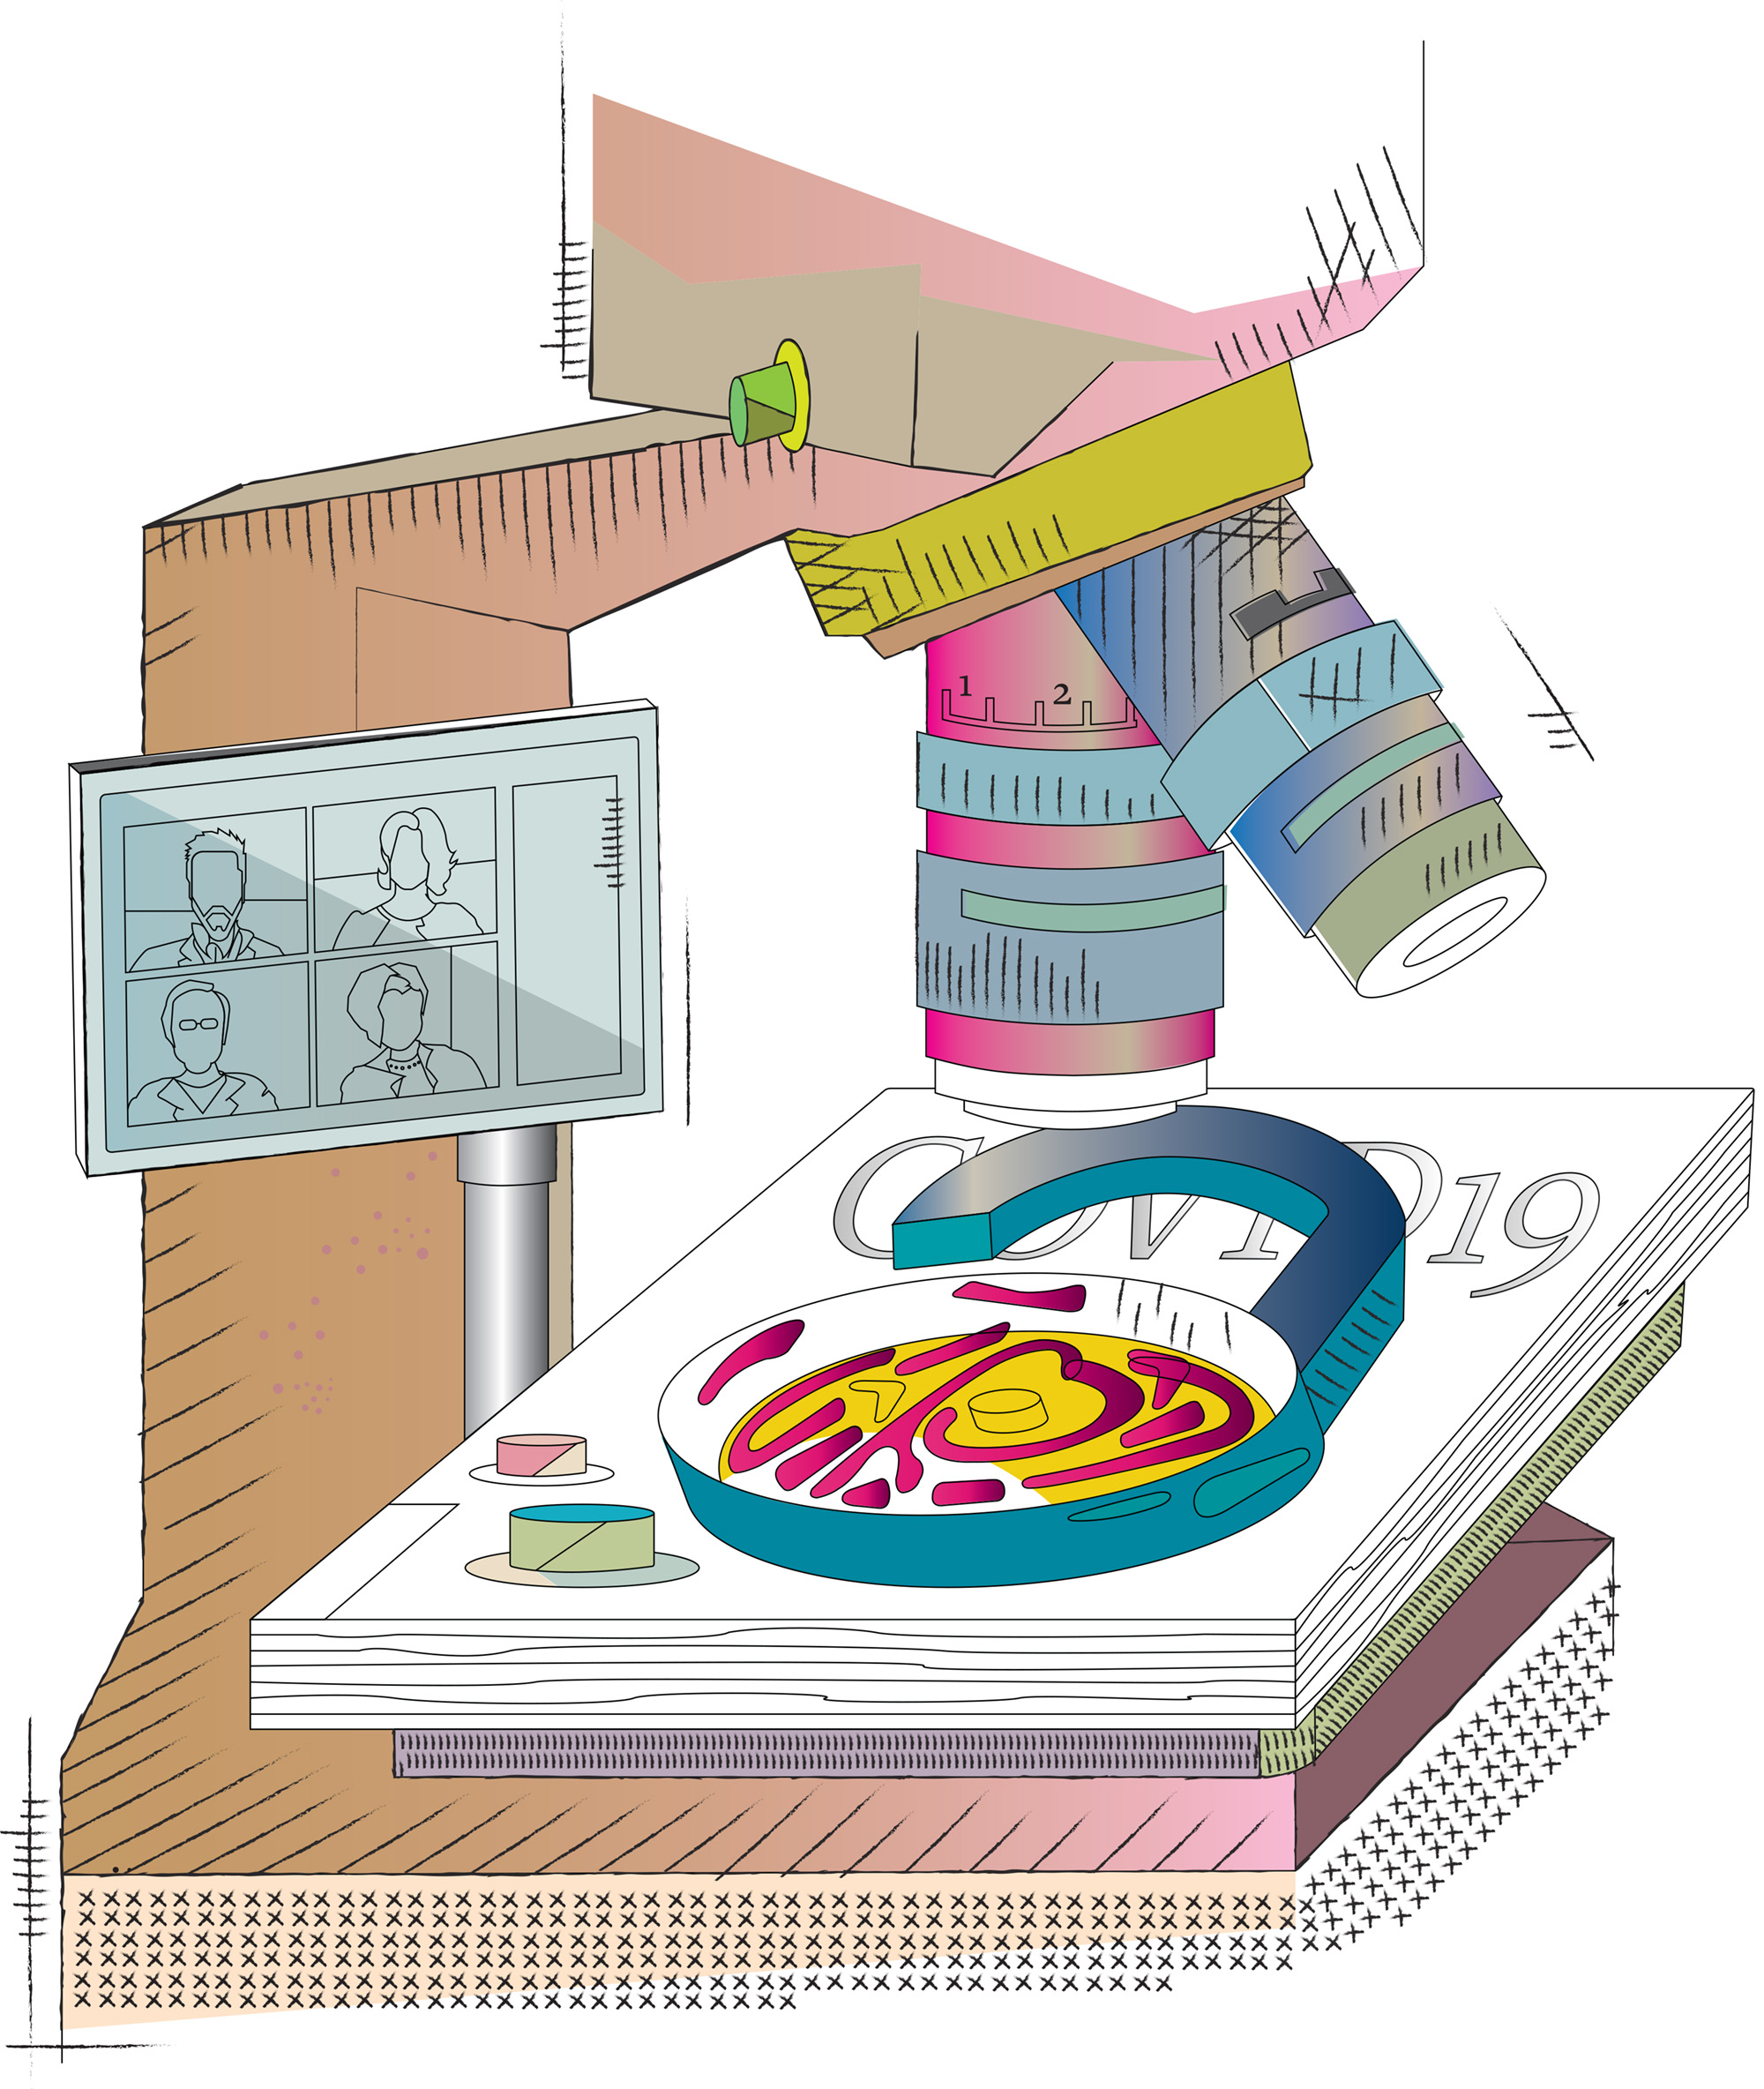 Illustration of microscope, dish with item and video conference image referencing people